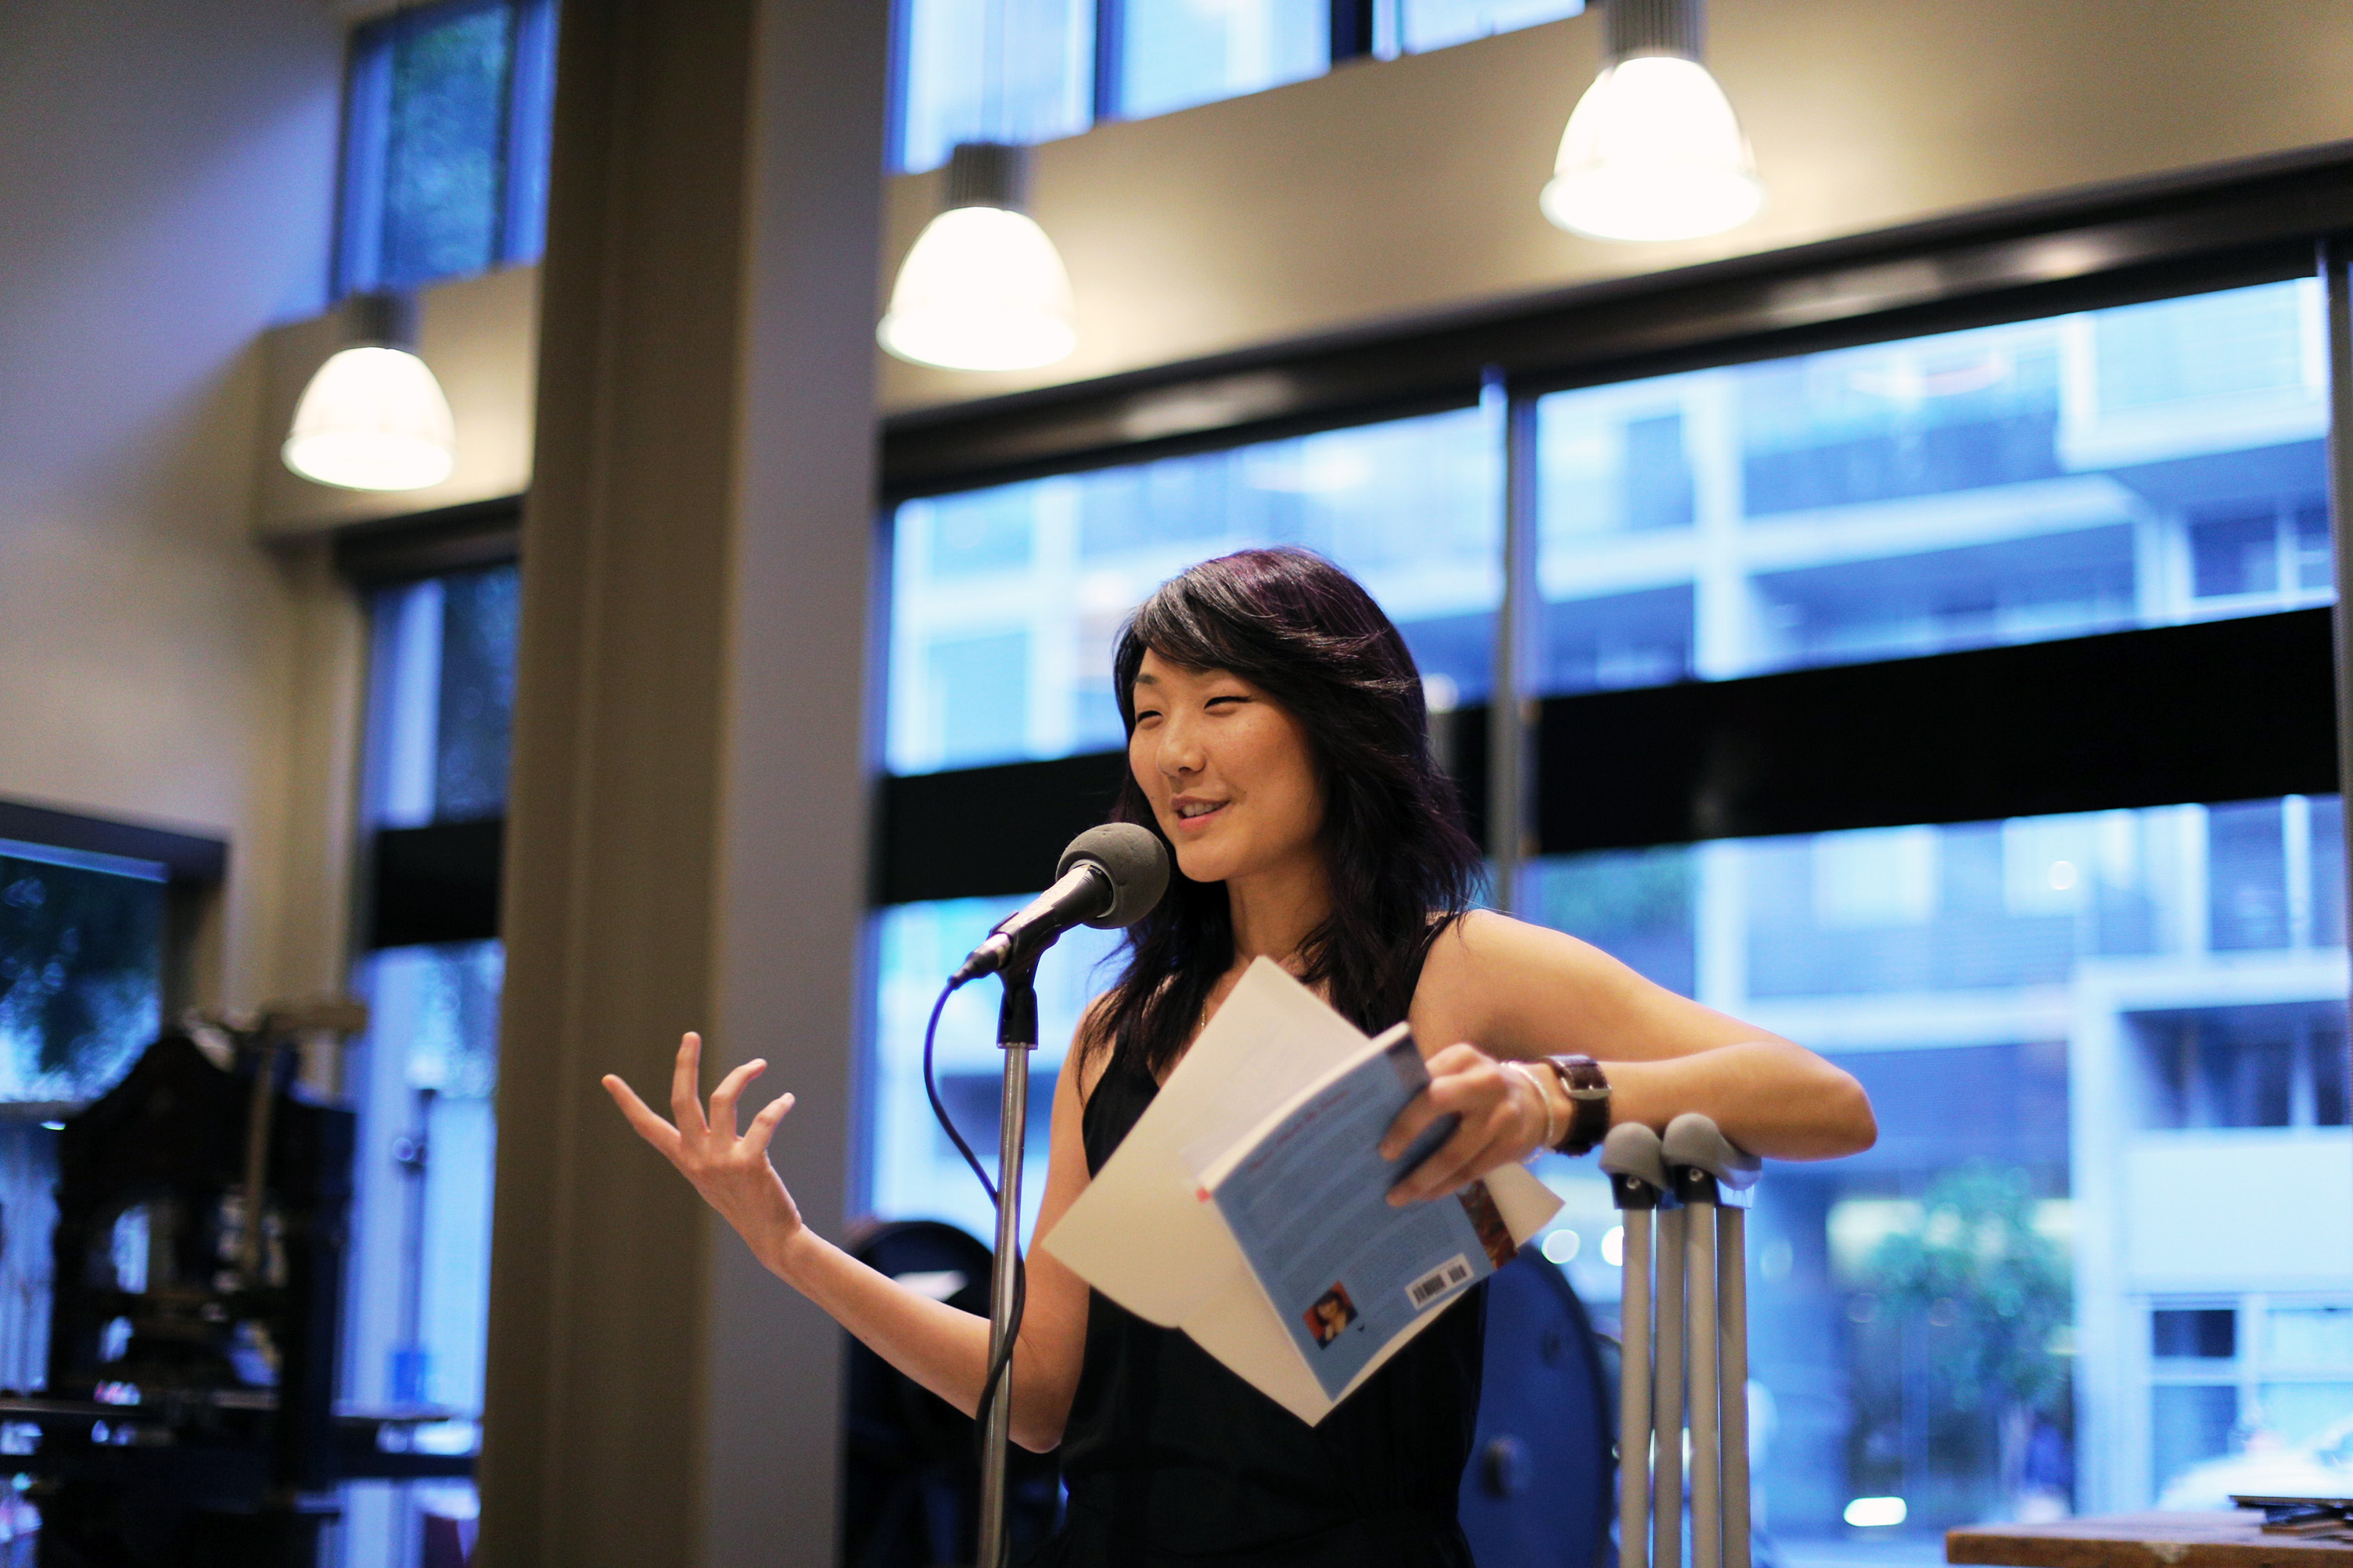 Grace under fire. Brynn Saito reads at the American Bookbinders Museum despite an injured hip